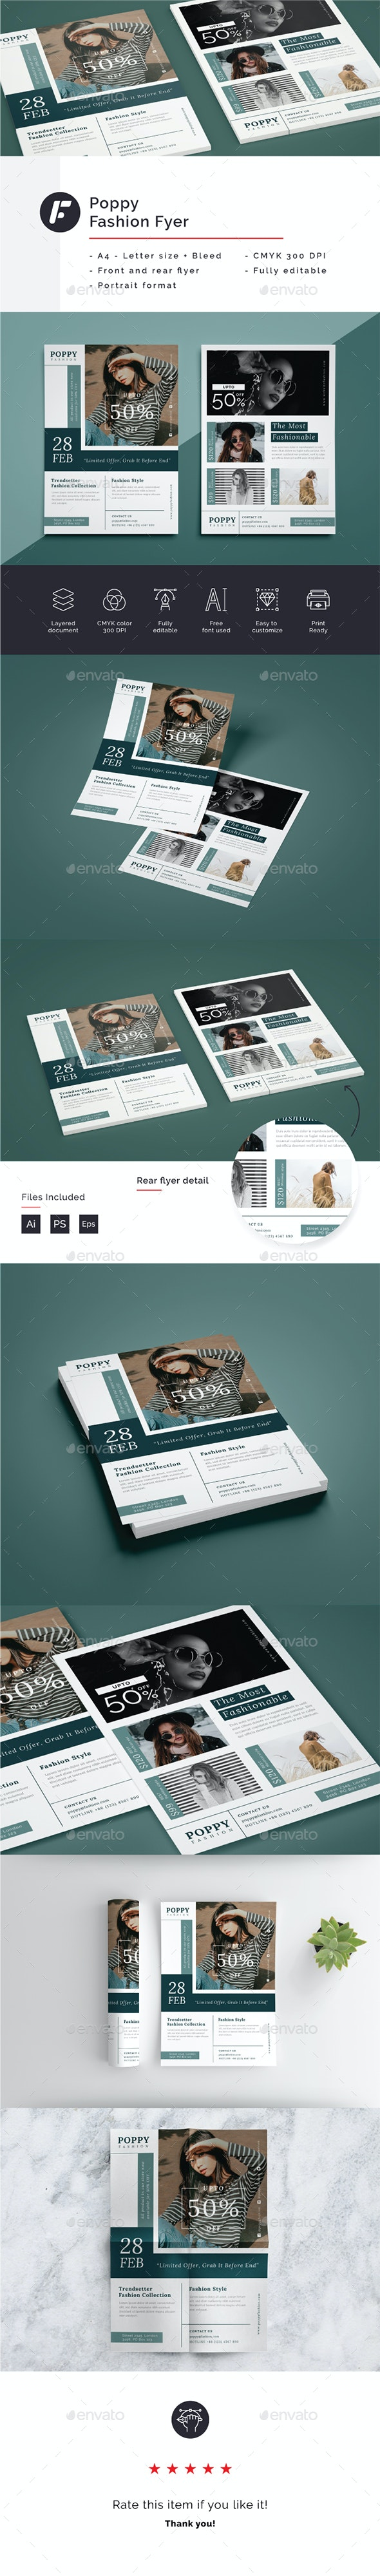 Poppy - Fashion Flyer Template - Commerce Flyers